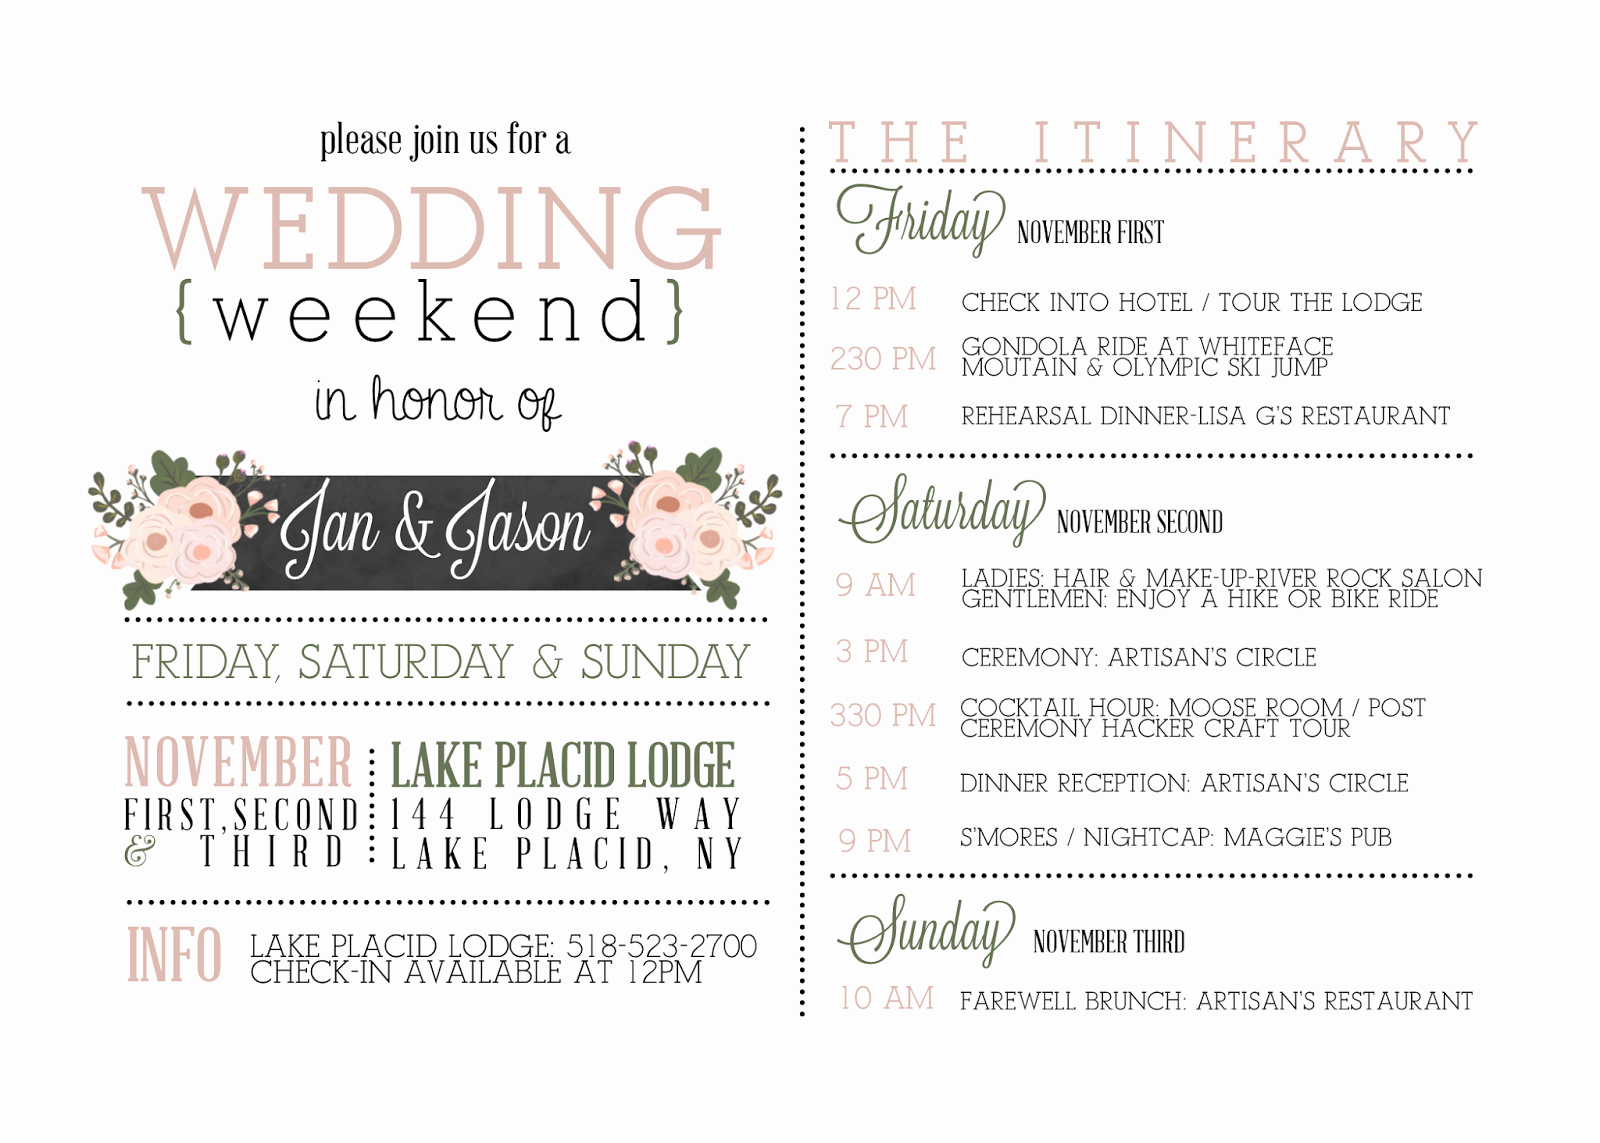 Wedding Weekend Itinerary Google Search …